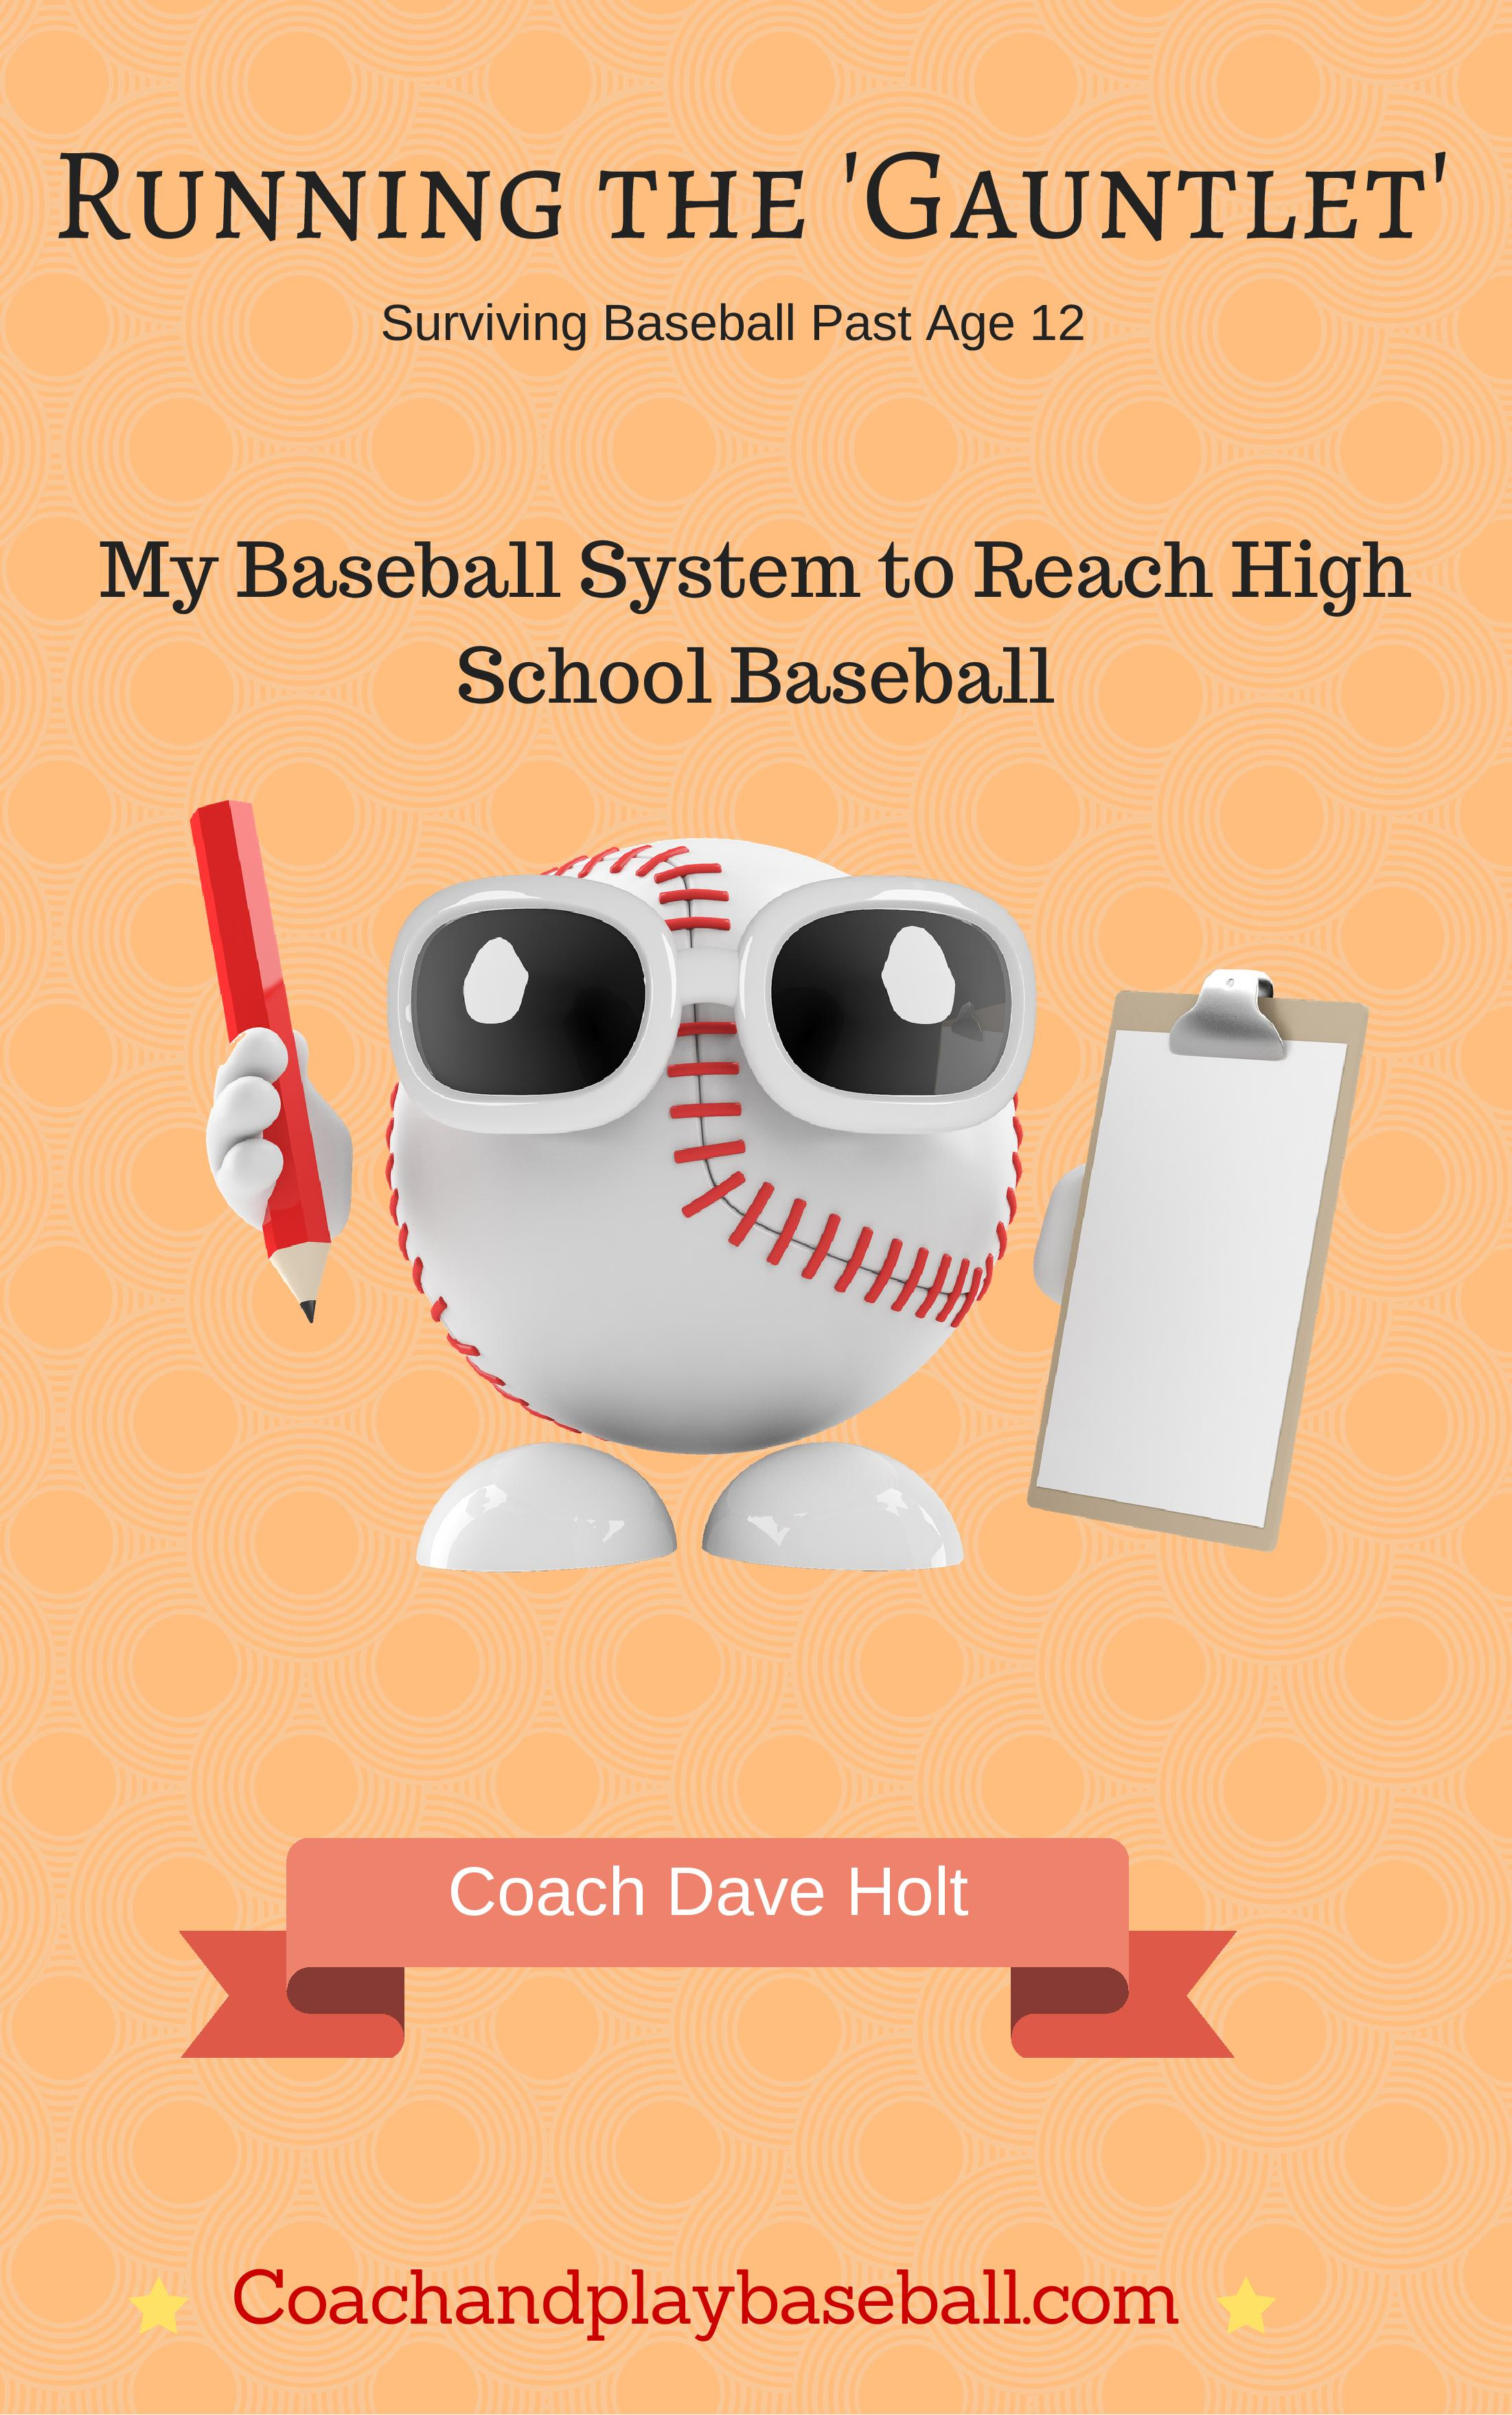 Running the 'Gauntlet' My Player Development System to reach high school baseball.